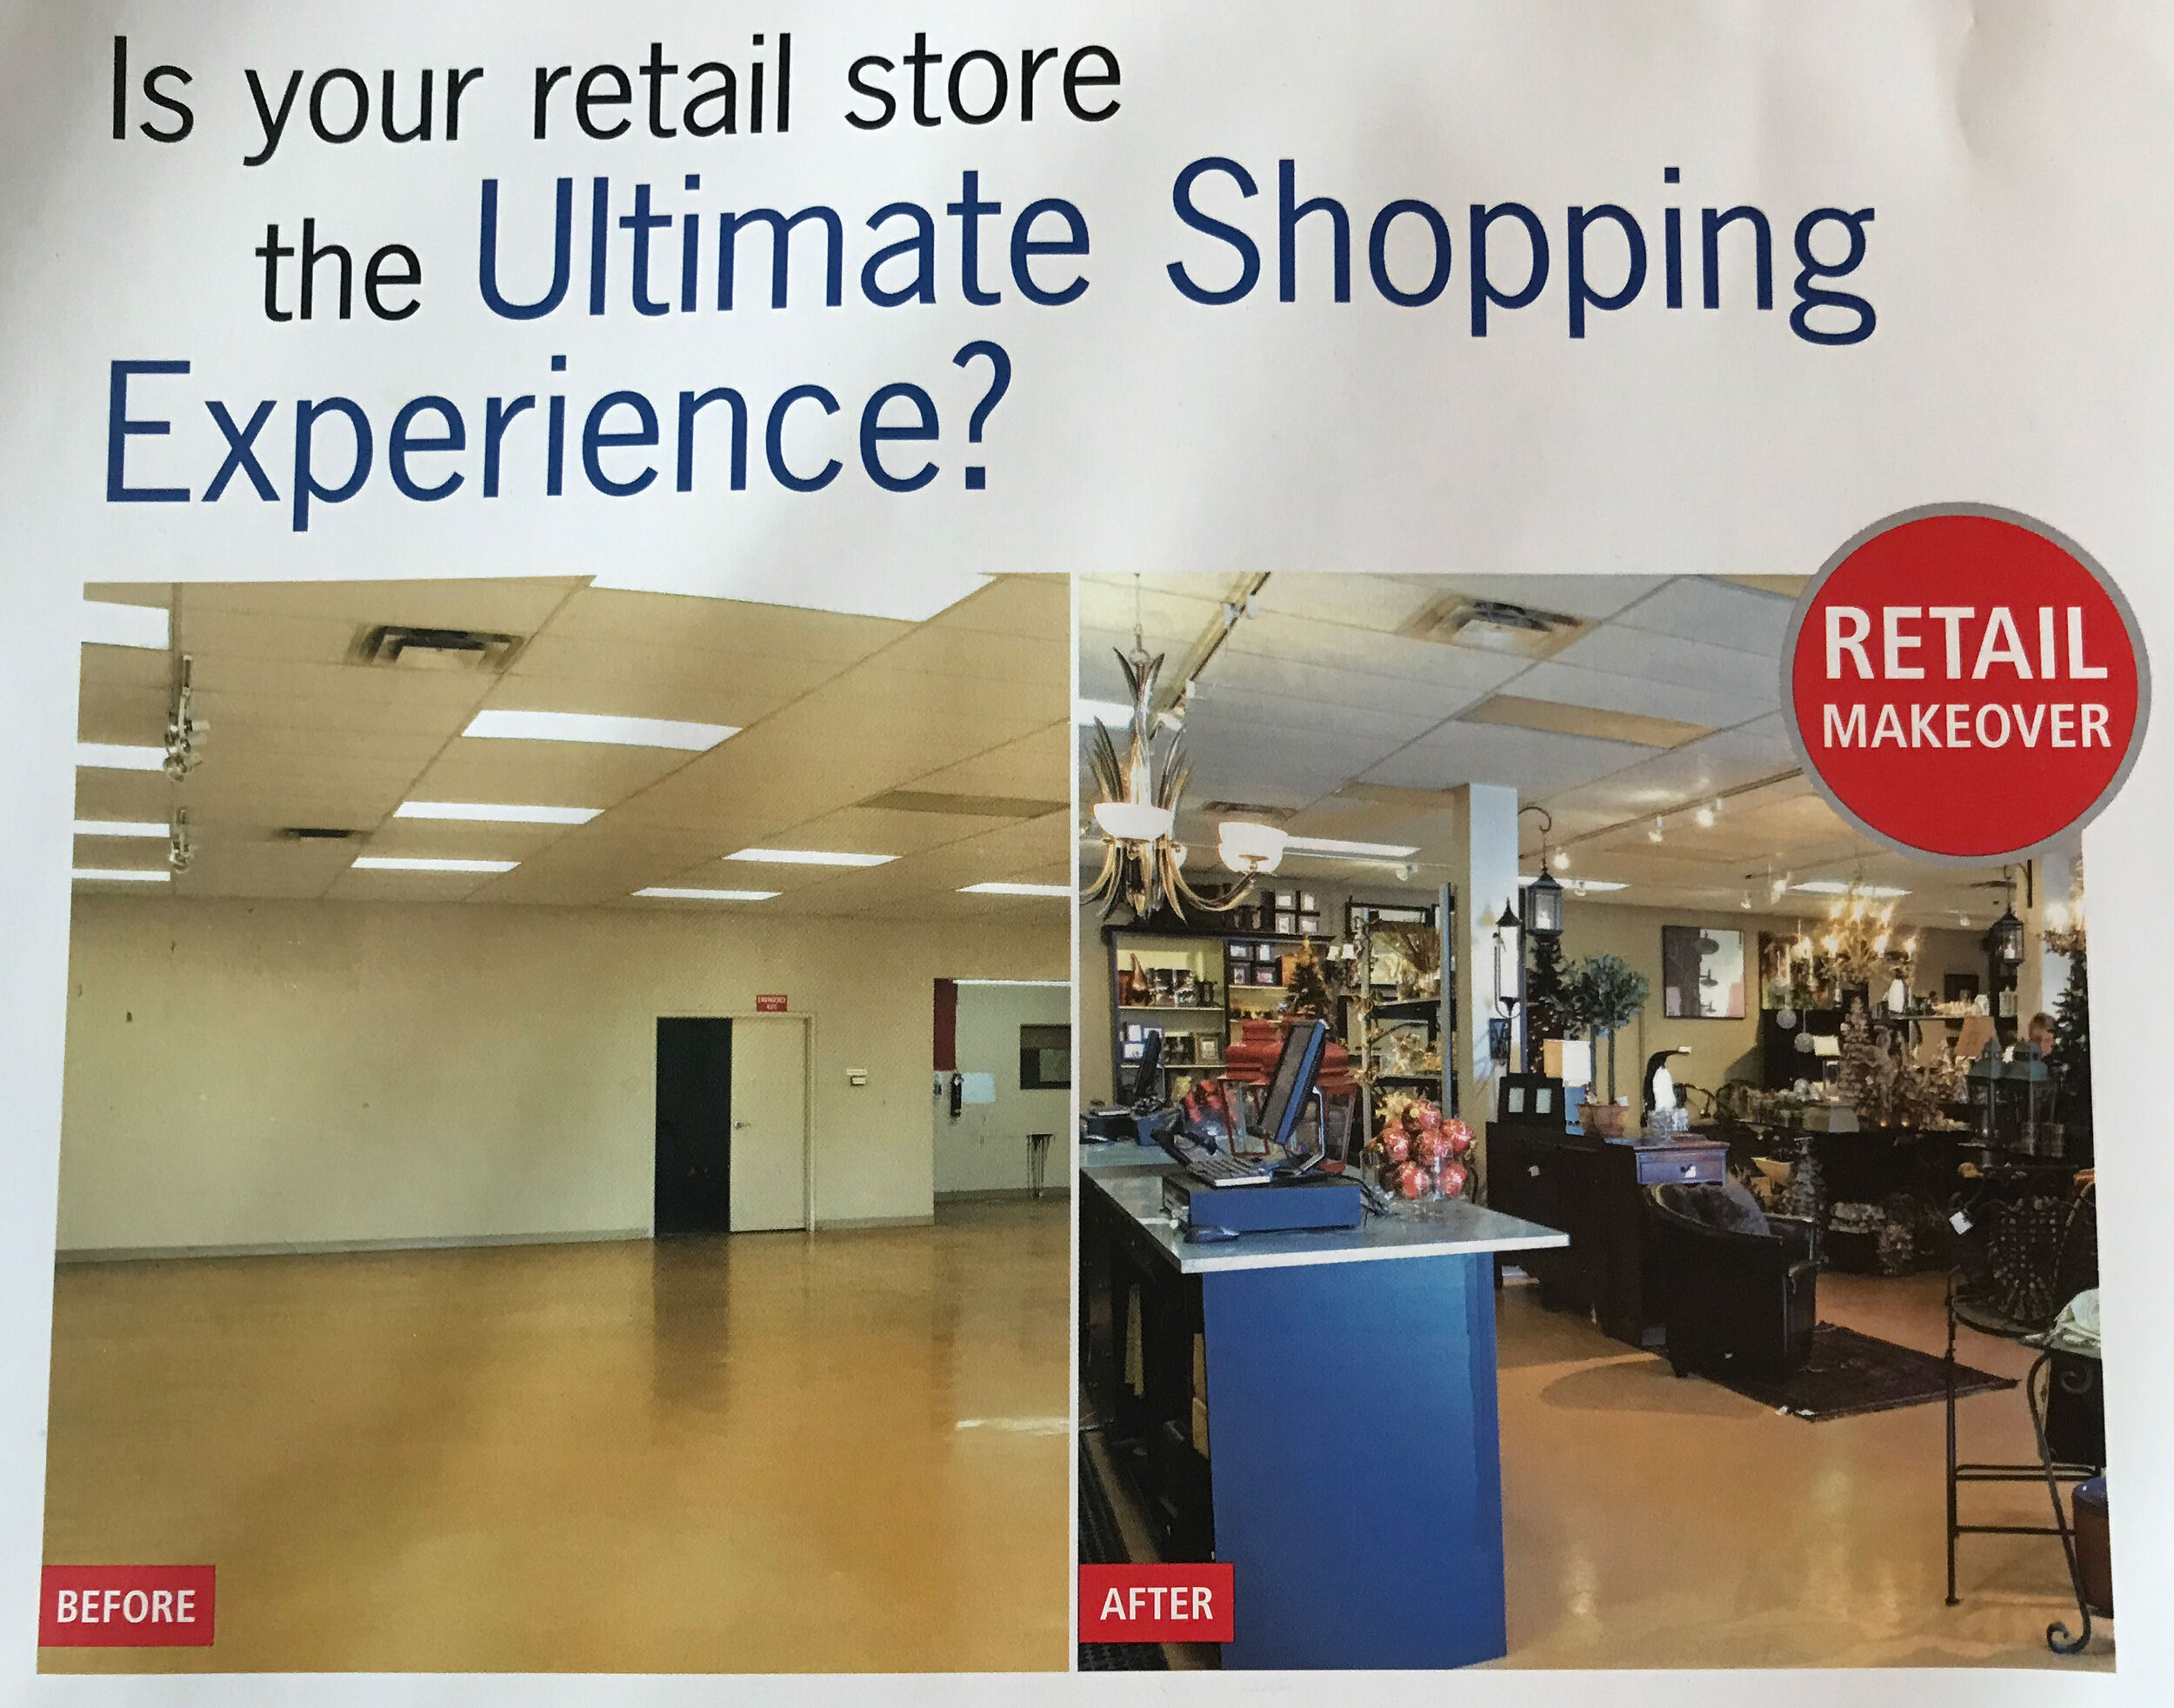 retail-makeover-experience.jpg